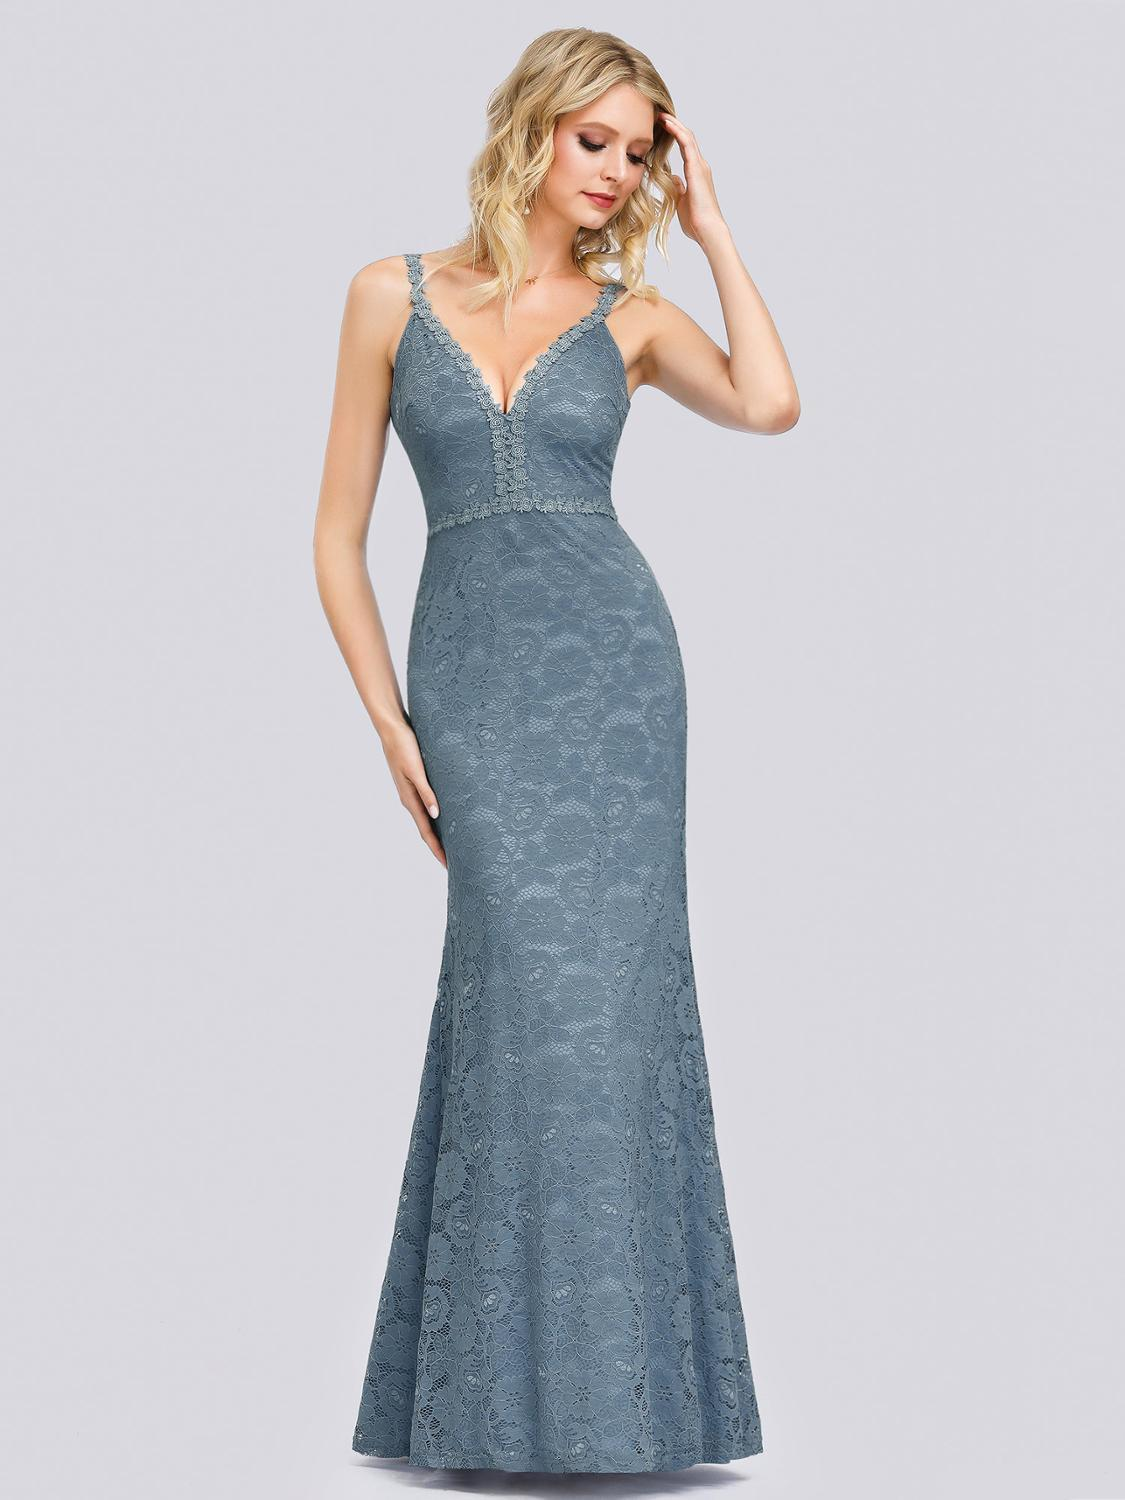 Party-Gowns Spaghetti-Straps Evening-Dresses V-Neck Ever Pretty Abendkleider Mermaid